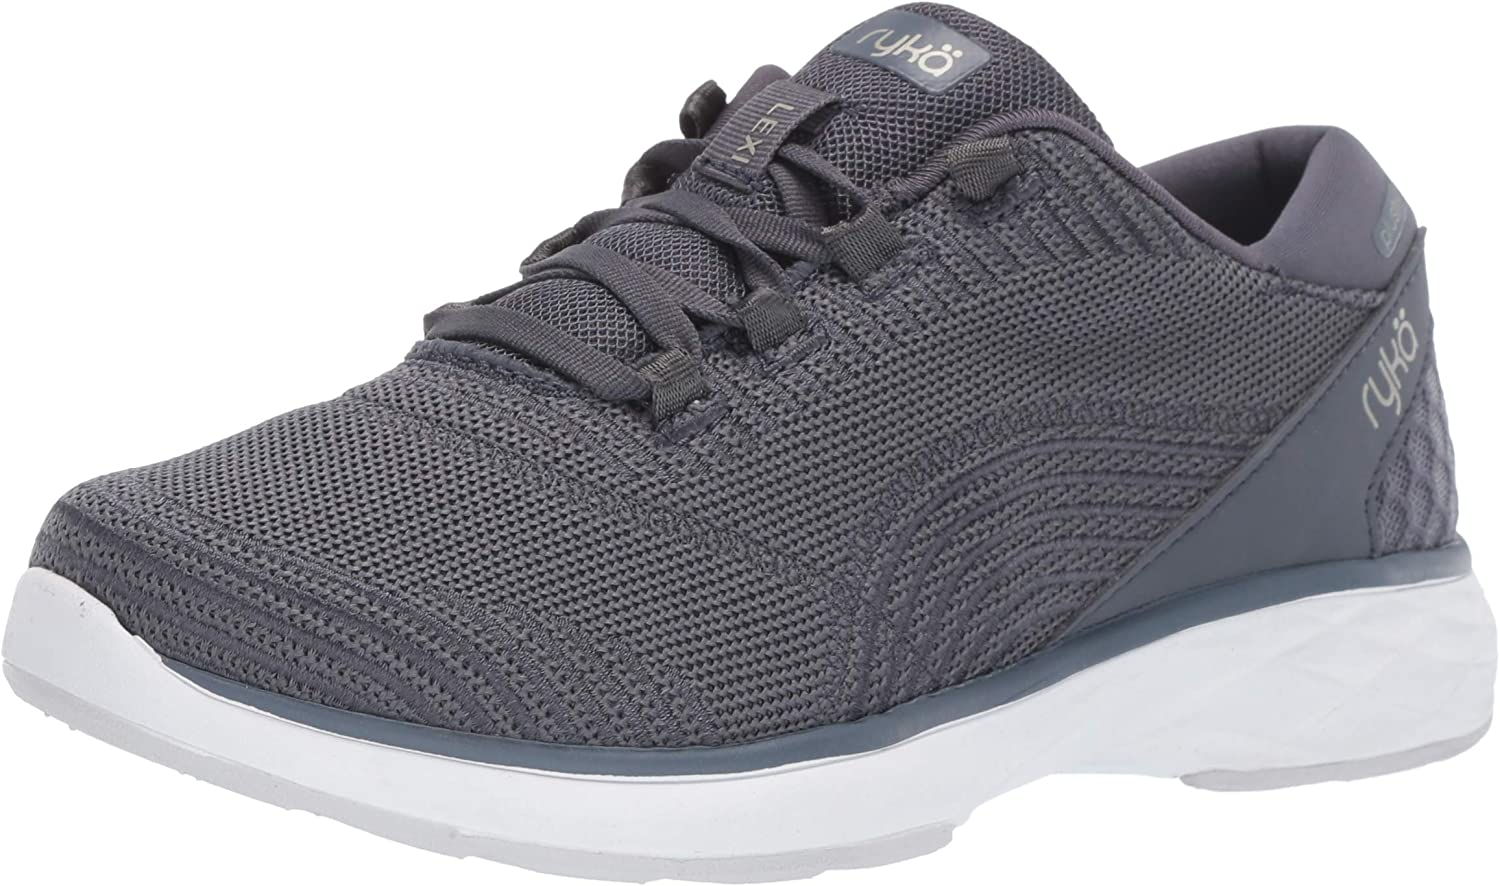 Ryka Womens Lexi Walking shoes